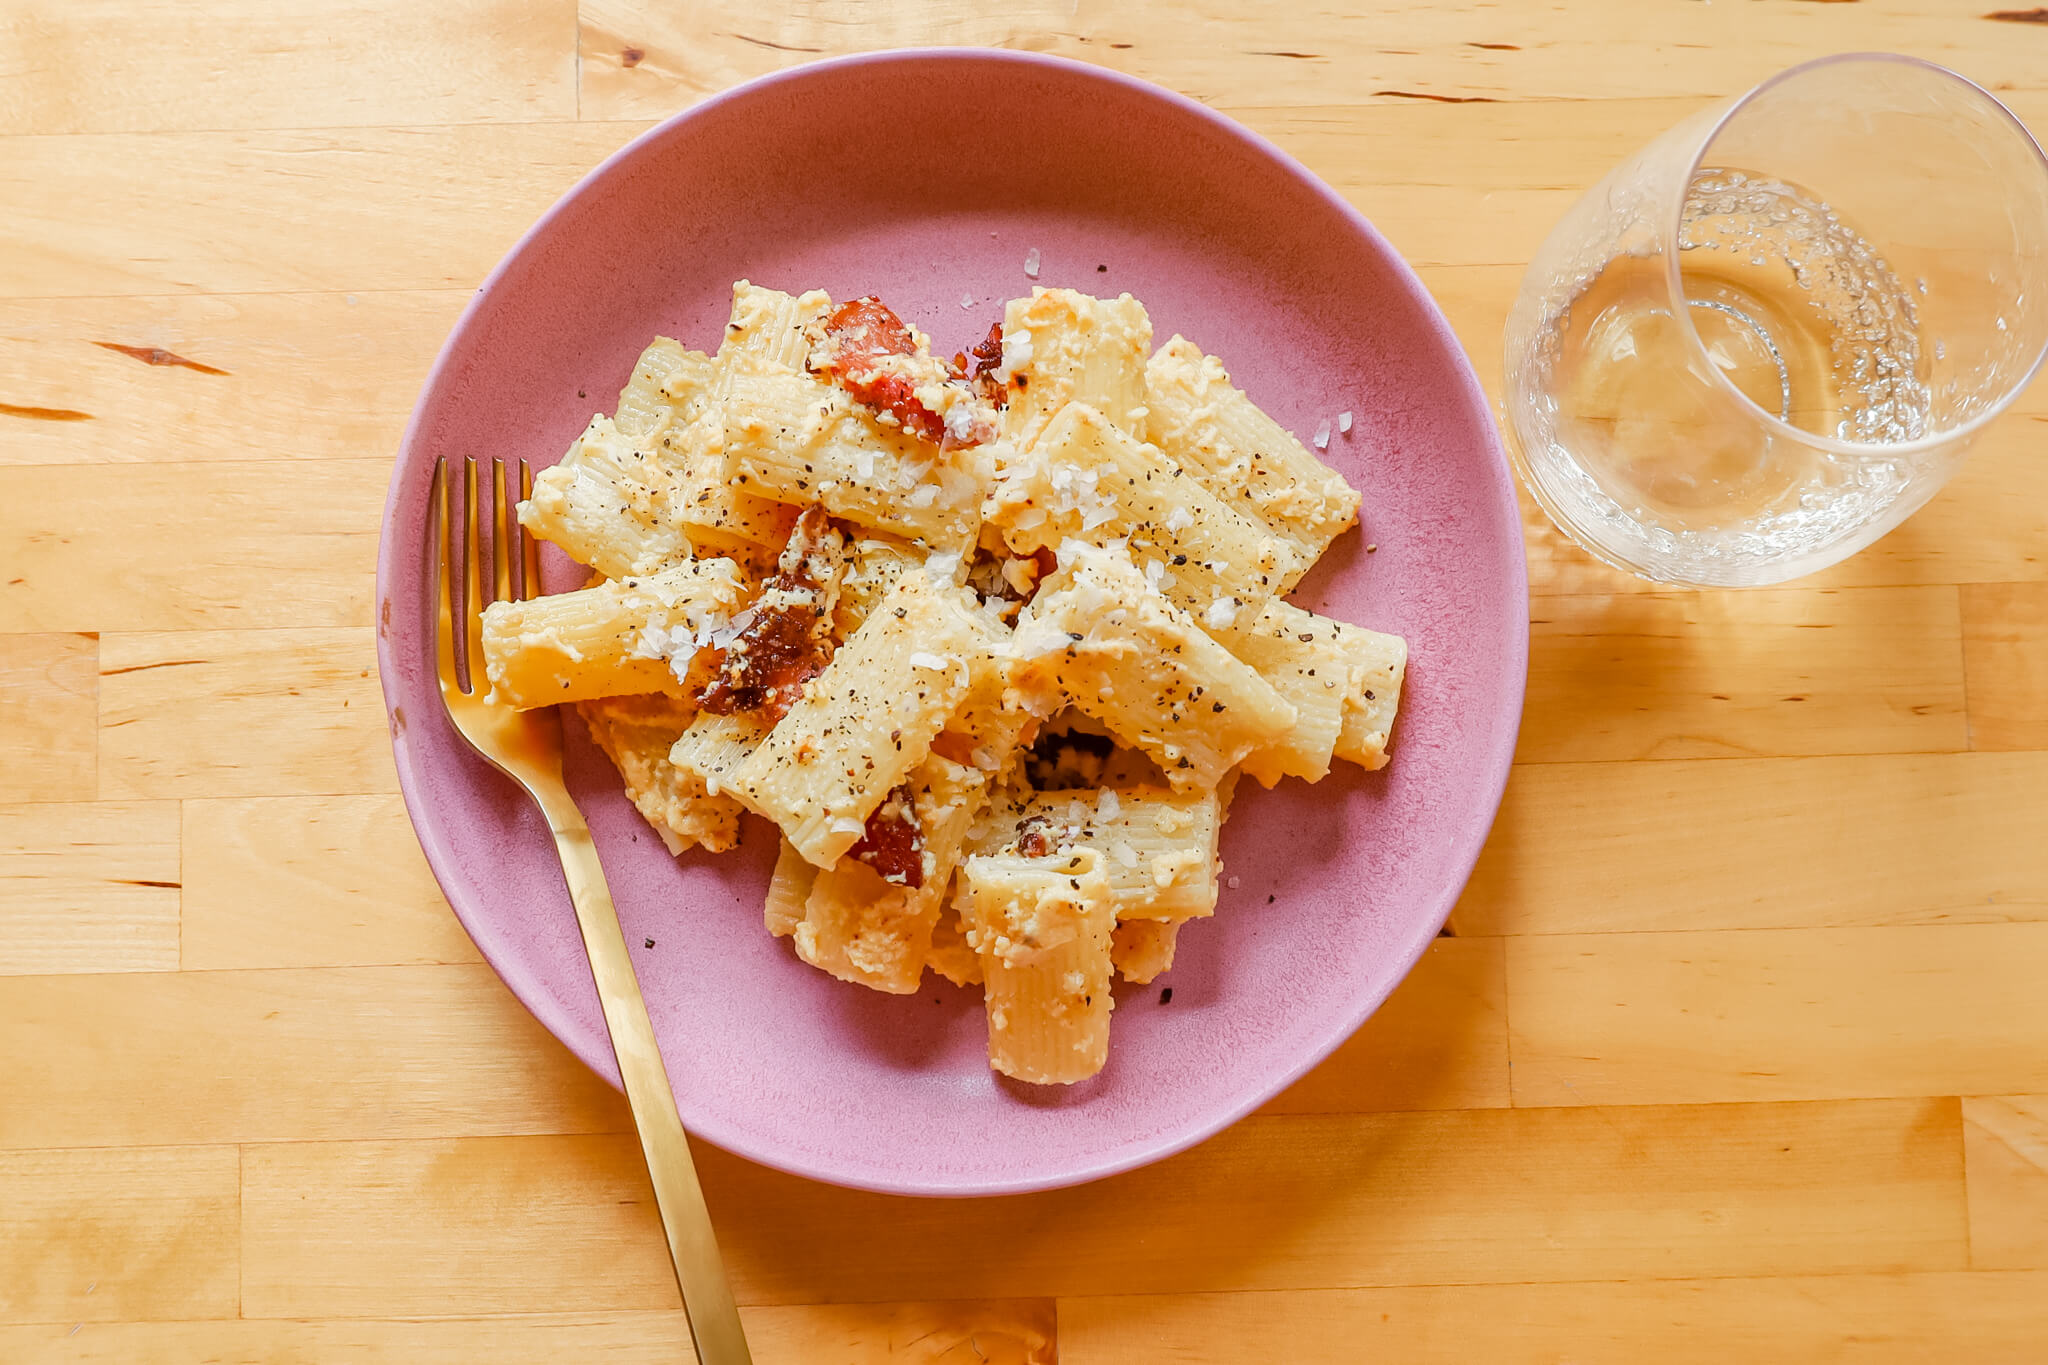 A plate of hearty pasta.